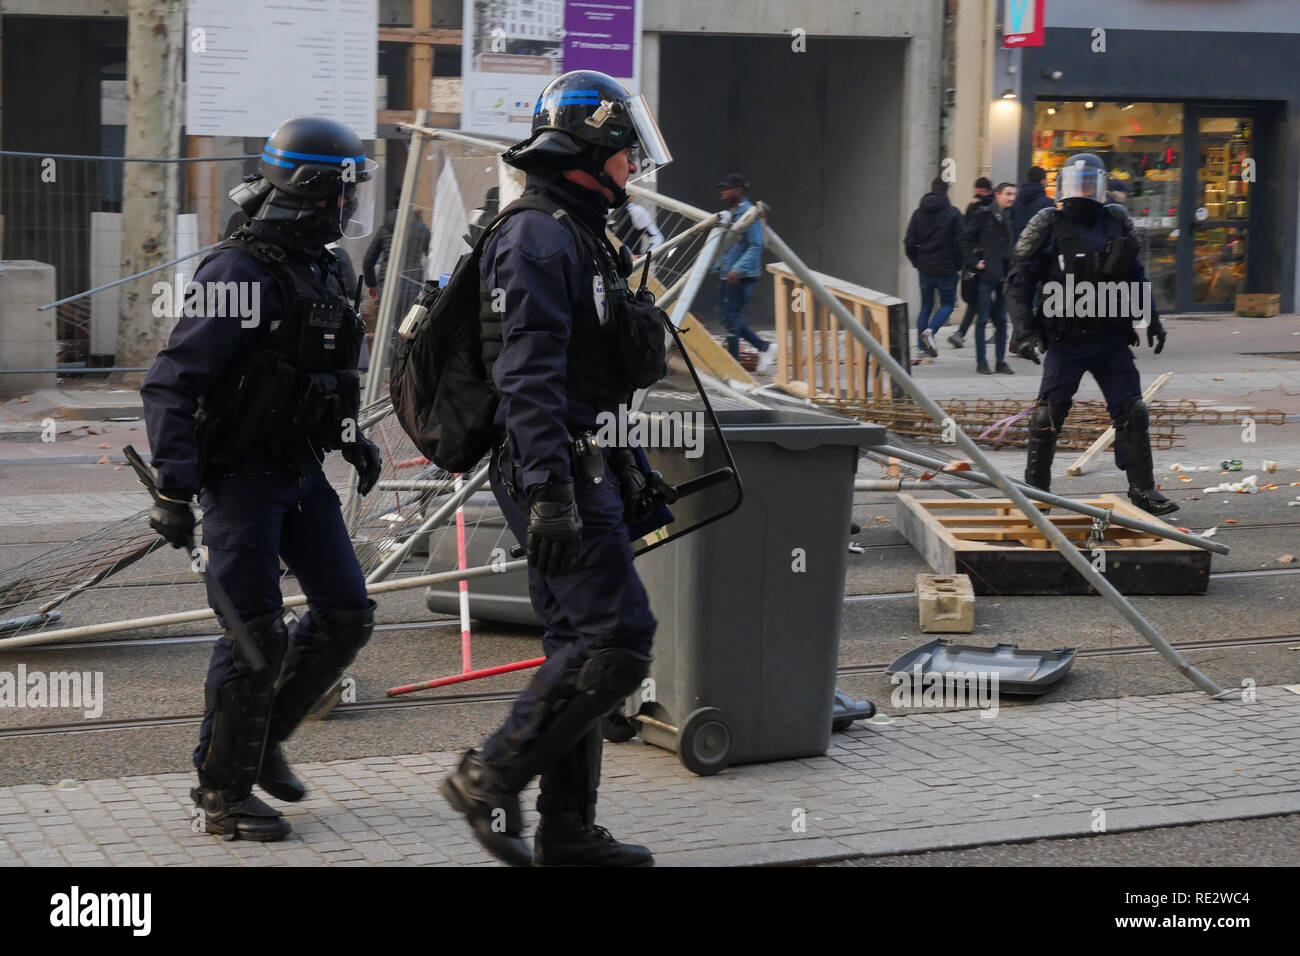 Lyon, France, January 19th 2019: Riot police officers are seen in Lyon (Central-Eastern France) on january 19, 2019 dismantle a barricade as Yellow jackets take the street during the 10th day of protest against french goverment reform projetct. Credit Photo: Serge Mouraret/Alamy Live News - Stock Image